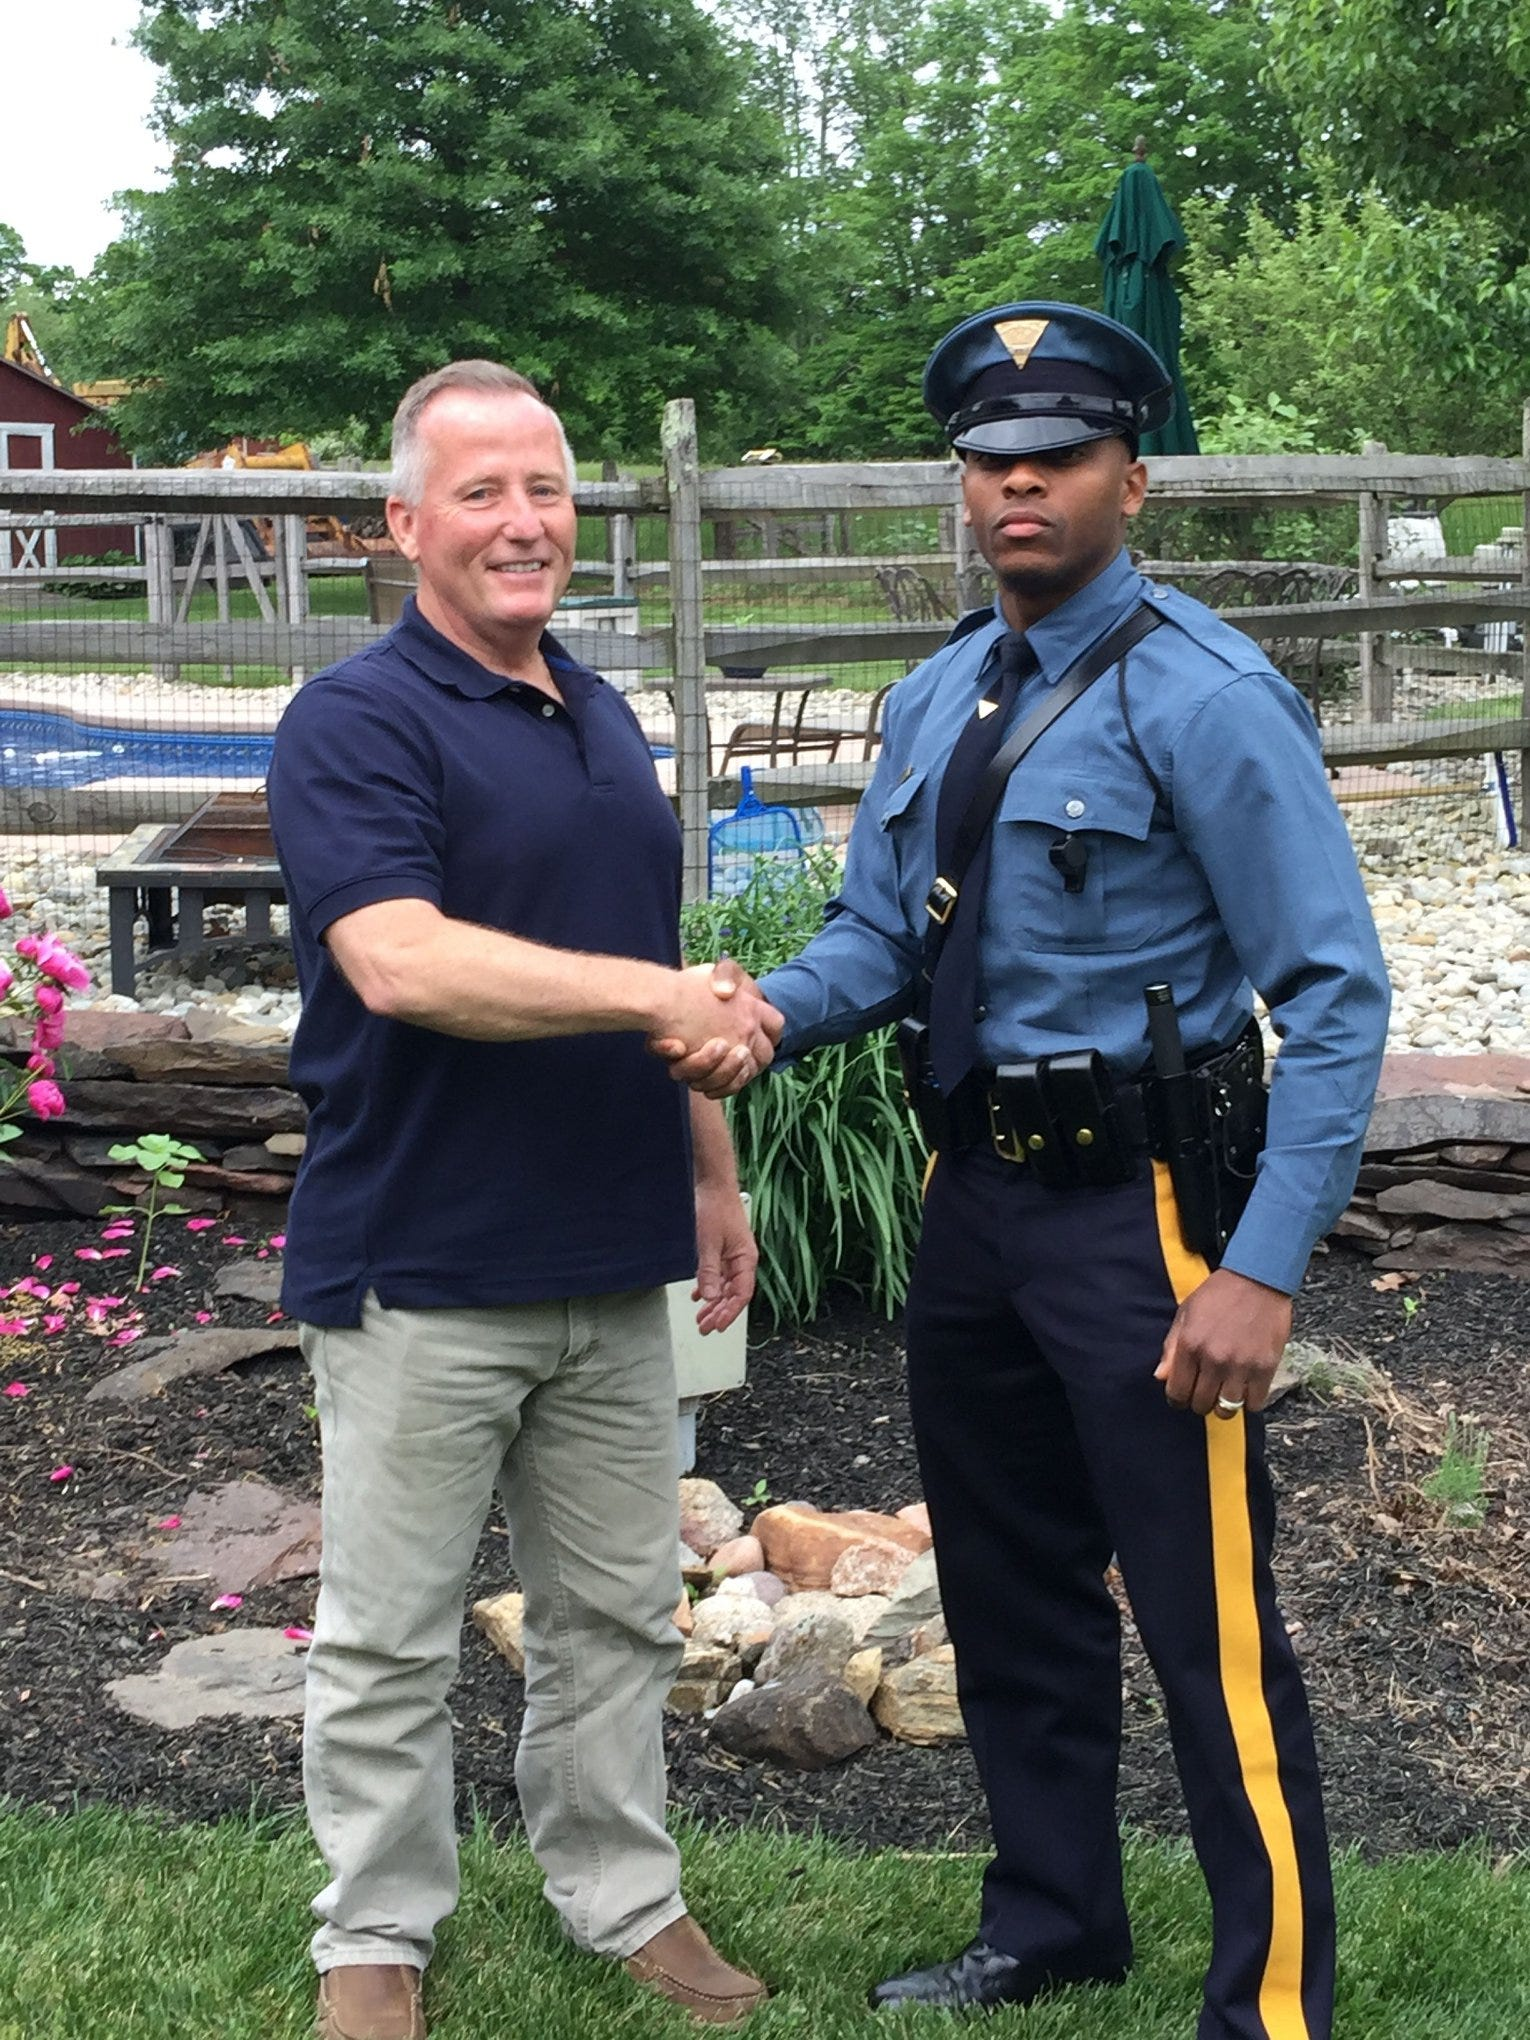 New Jersey state trooper pulls over retired cop who delivered him 27 years ago